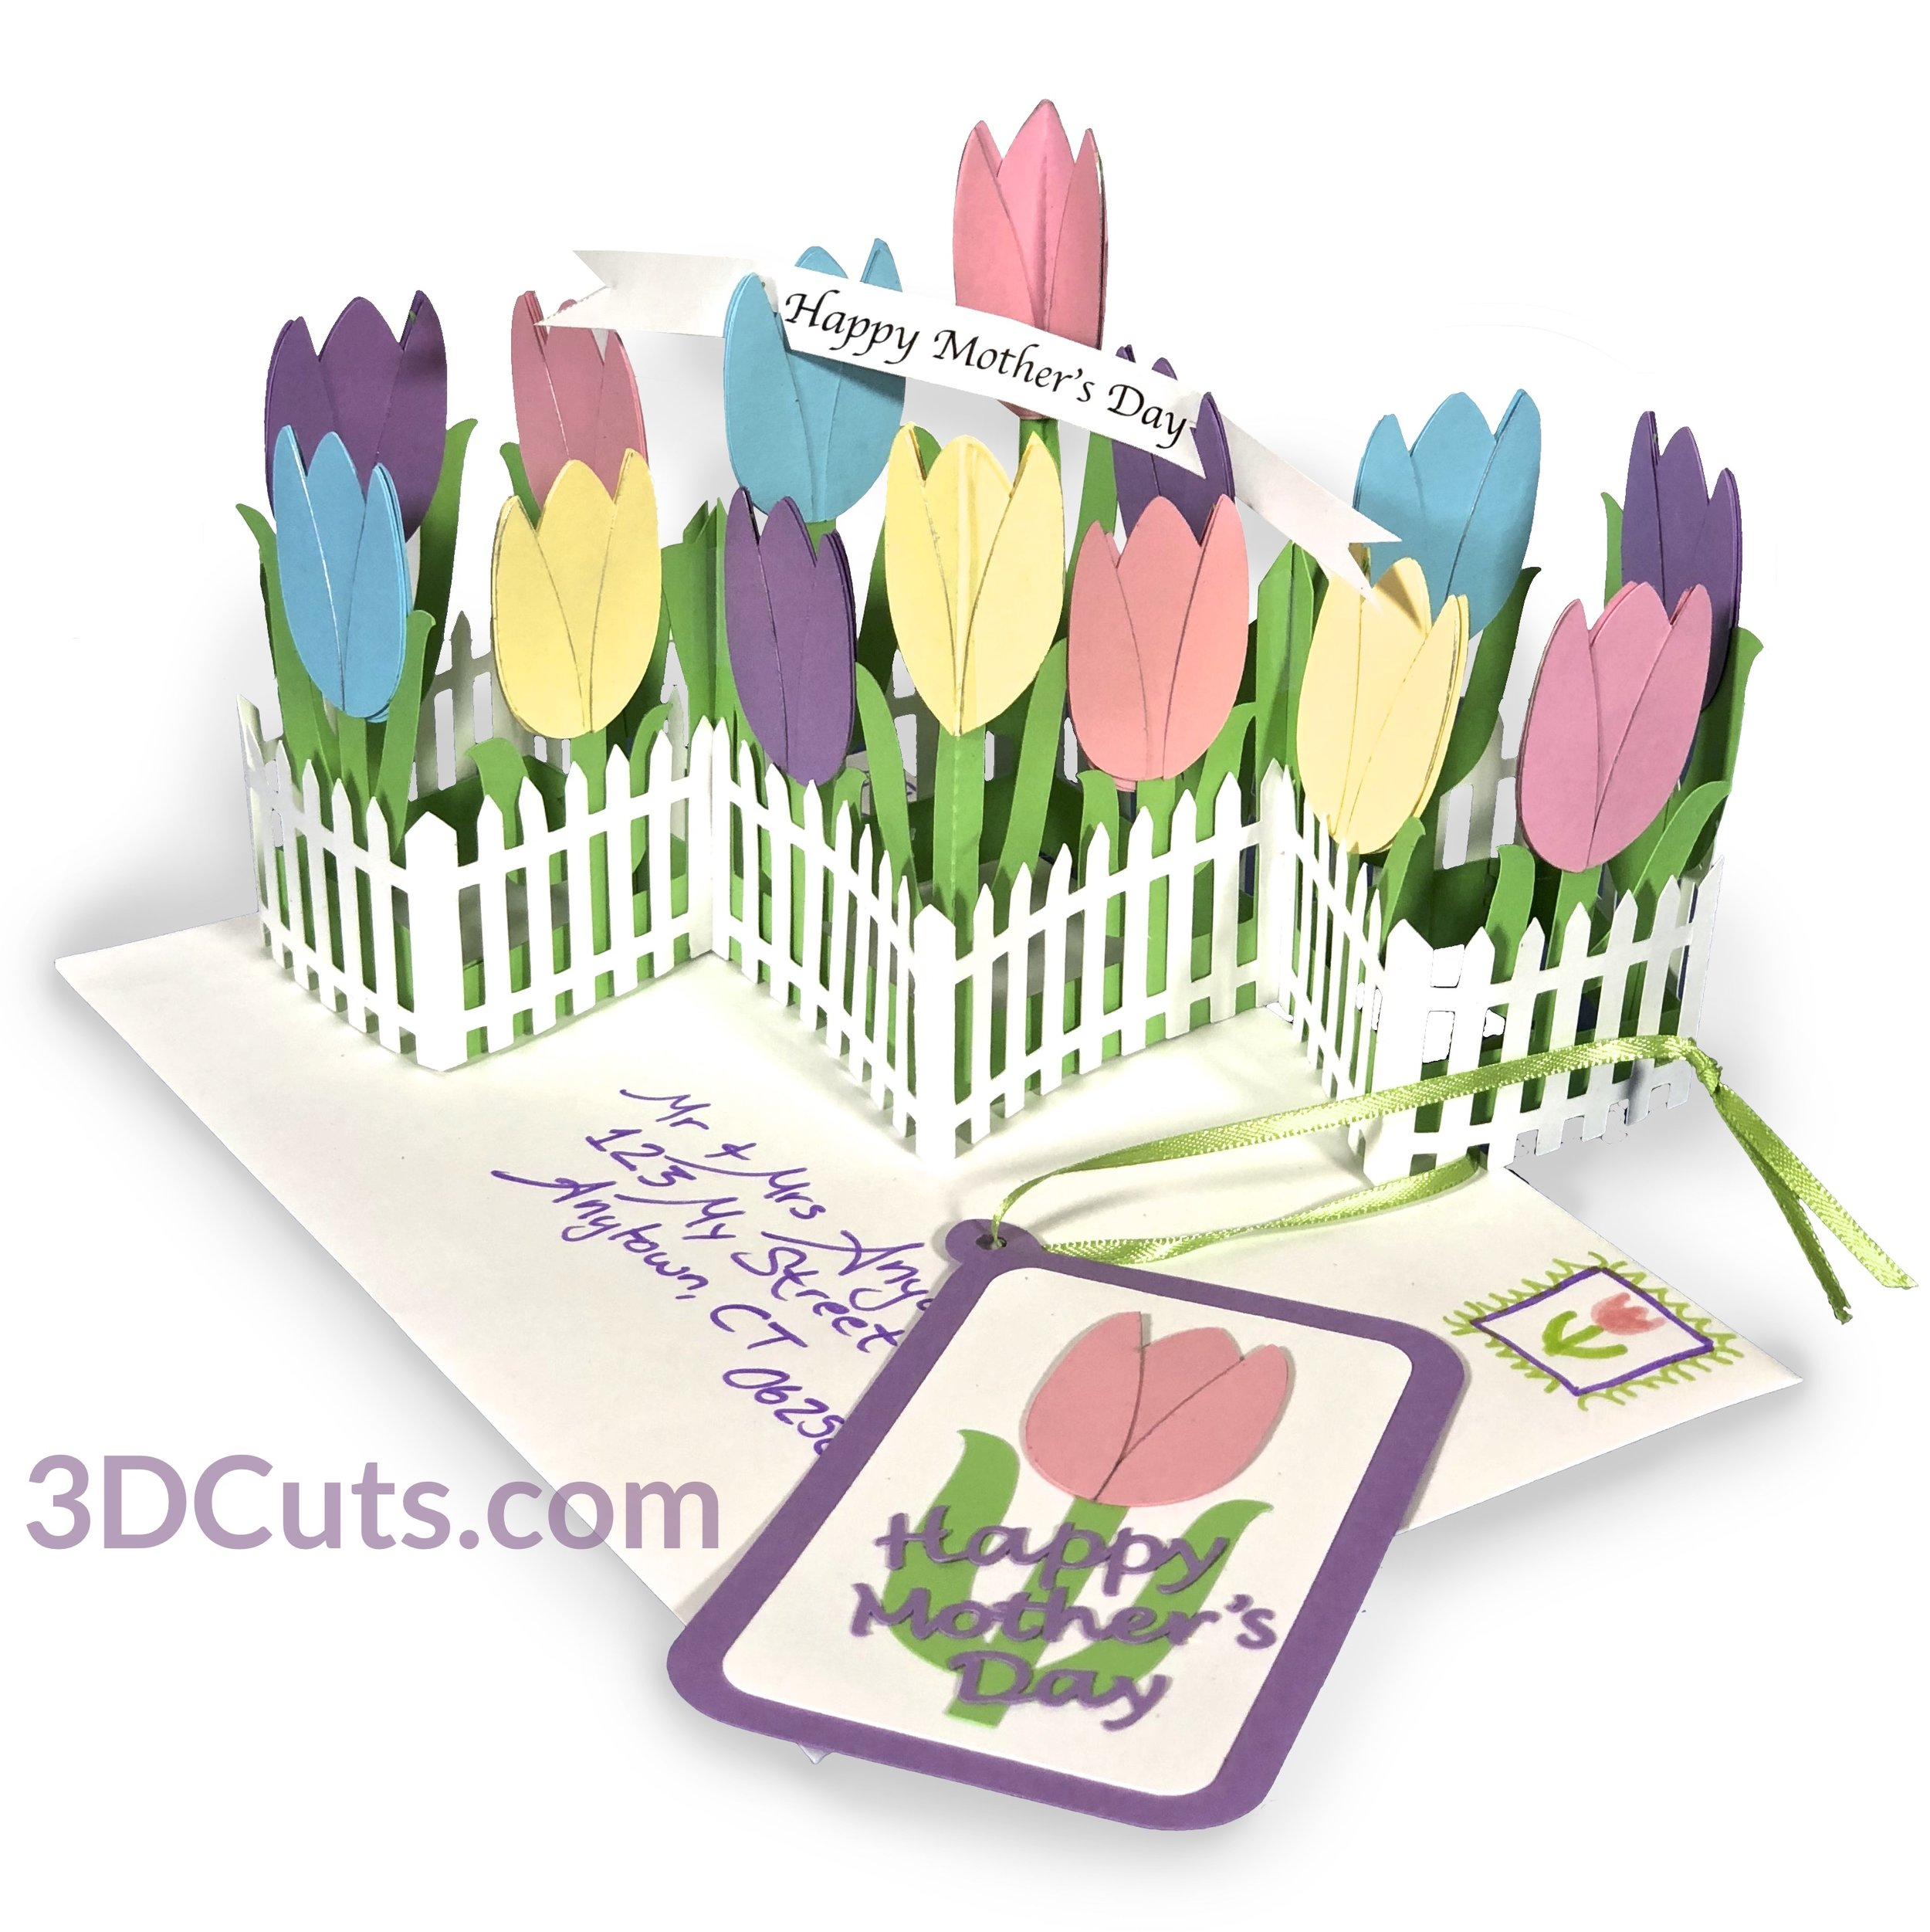 Tulips Zig Zag Card, ©3DCuts.com, Marji Roy, 3D cutting files in .svg, .dxf, and .pdf formats for use with Silhouette, Cricut and other cutting machines, paper crafting files